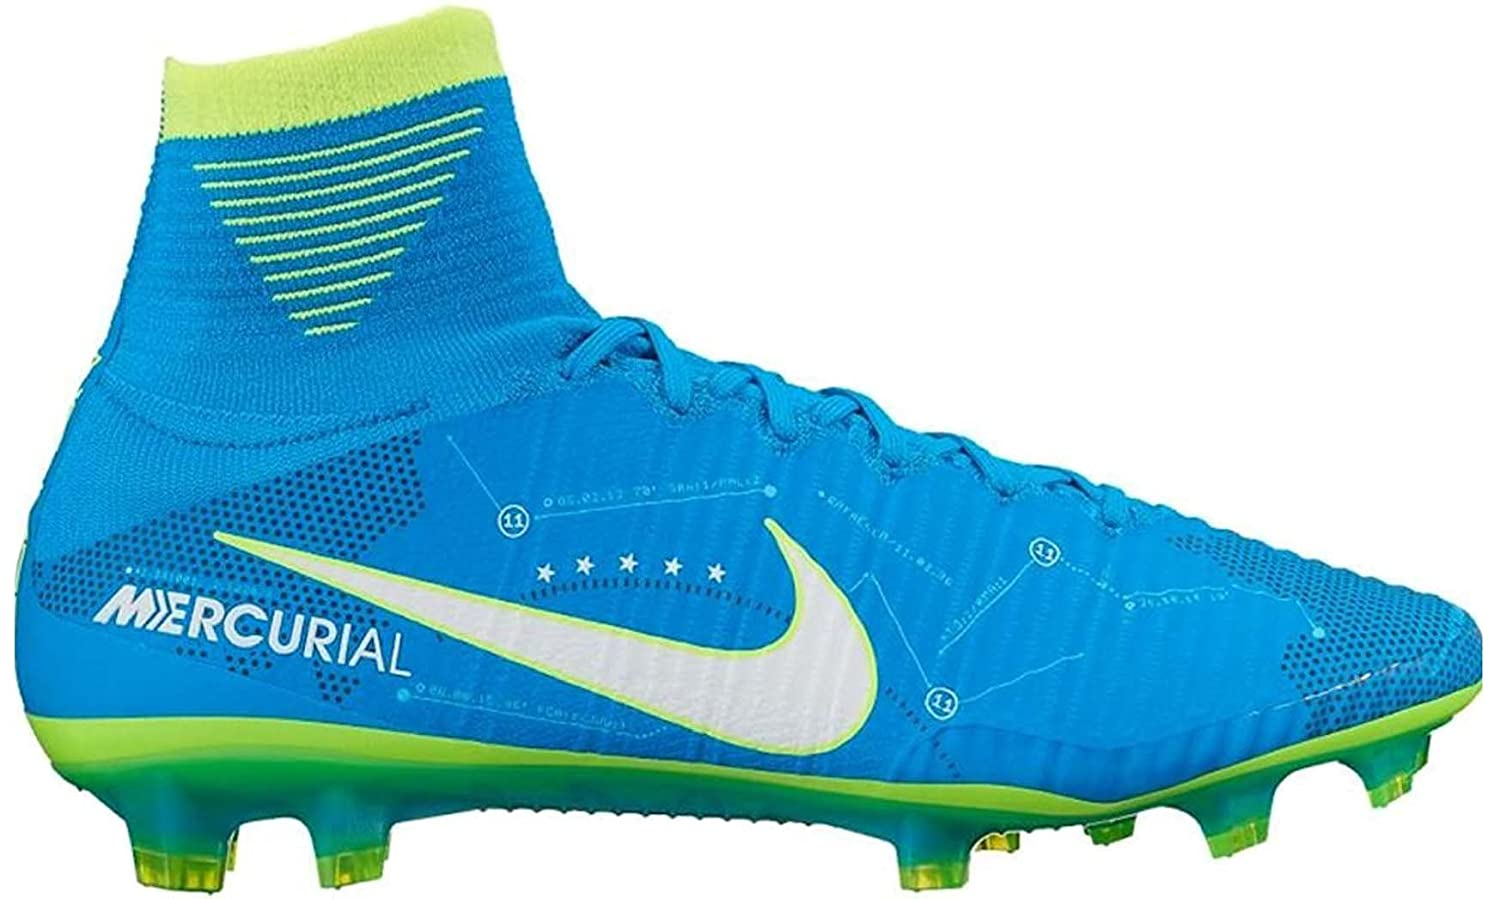 hot sale online 5b8c8 77c89 Amazon.com   Nike Mercurial Superfly V FG Neymar Soccer Cleats   Soccer